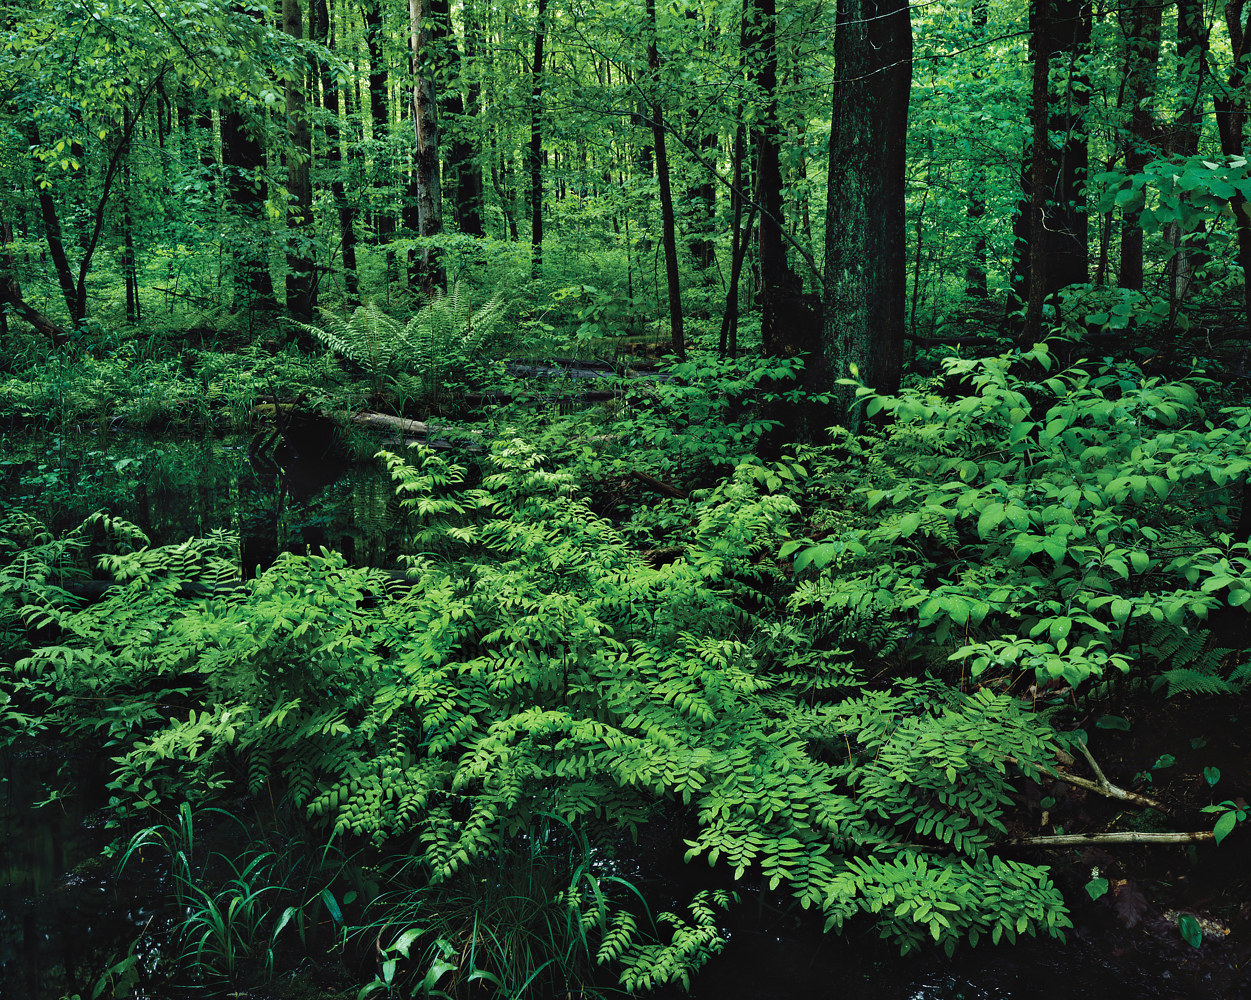 Hemlock Swamp, Revisited by Wayne Mazorow